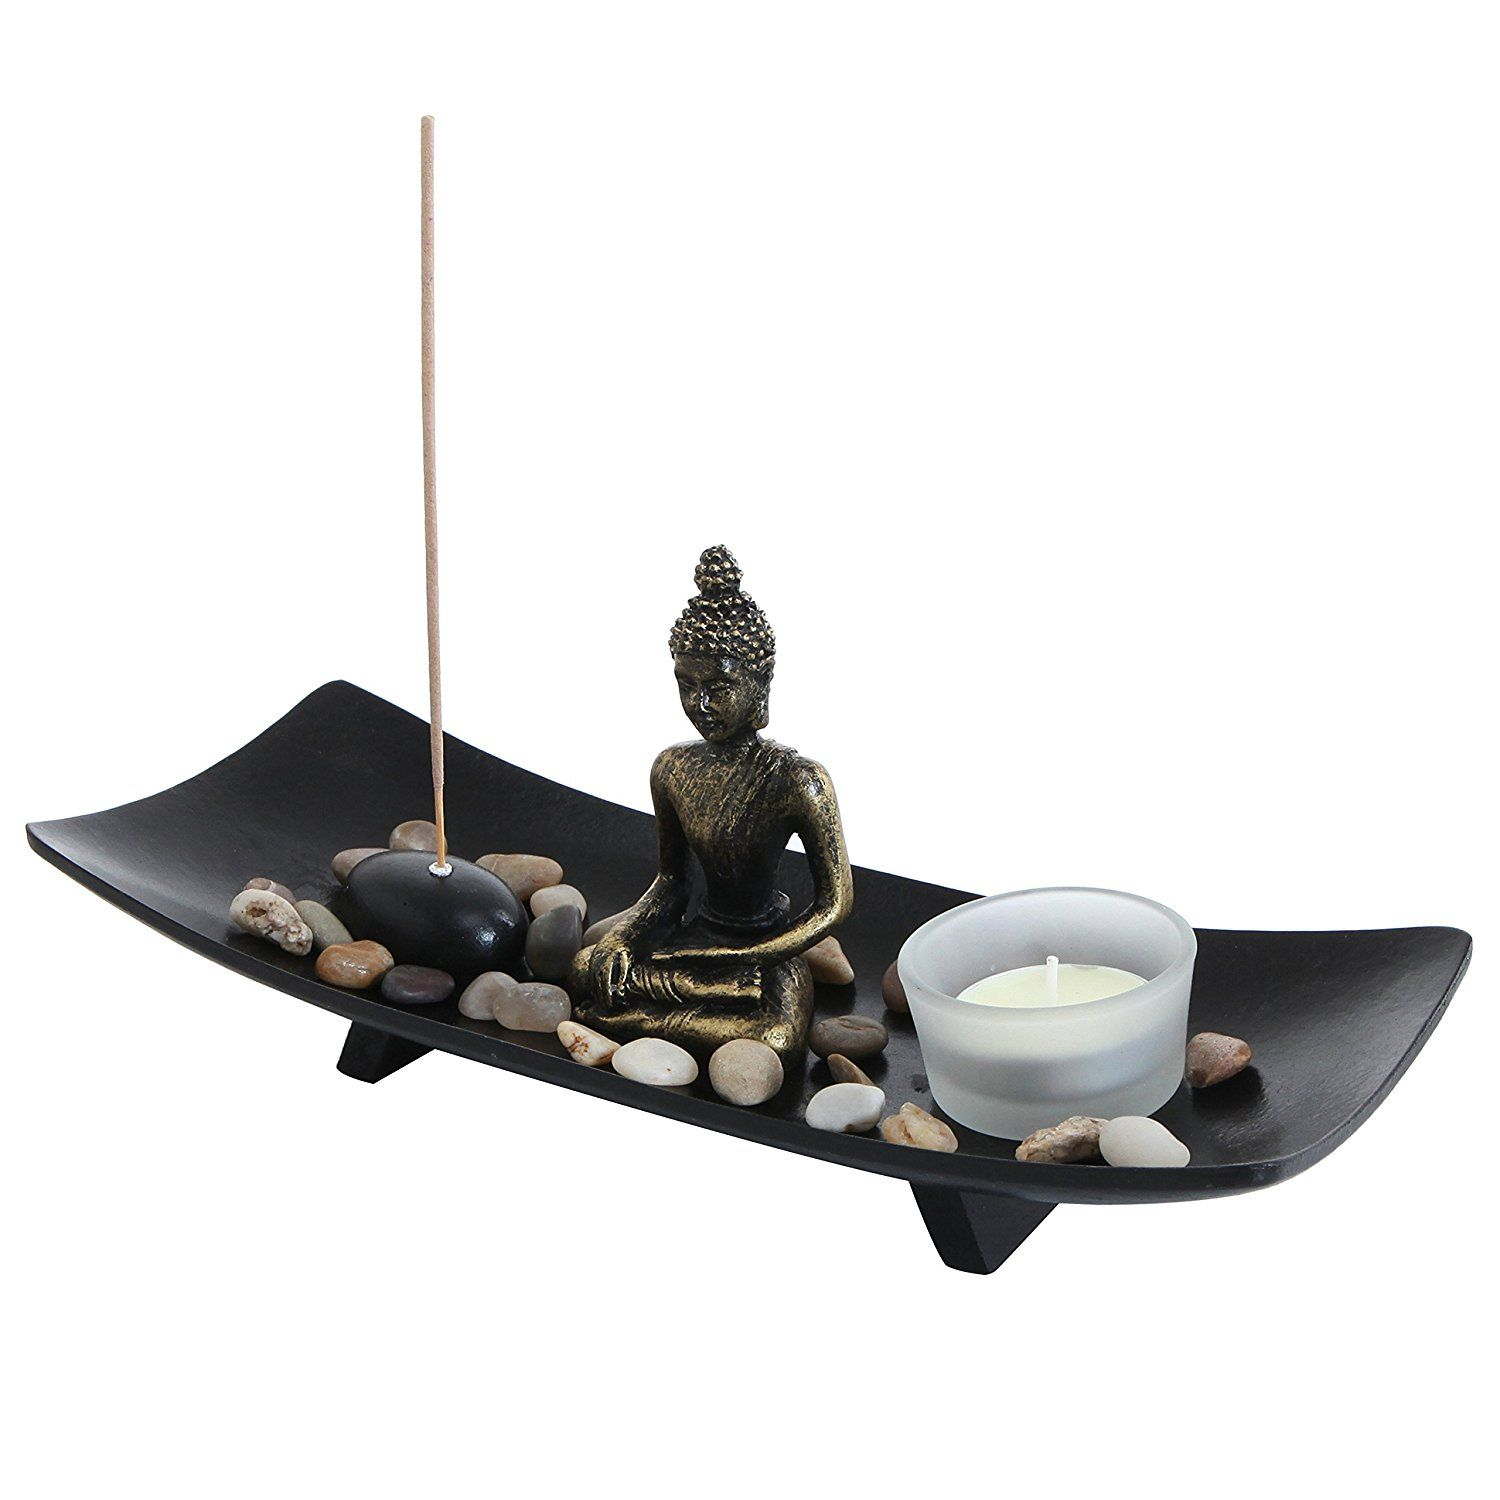 Zen garden buddha statue with glass tealight candle and incense